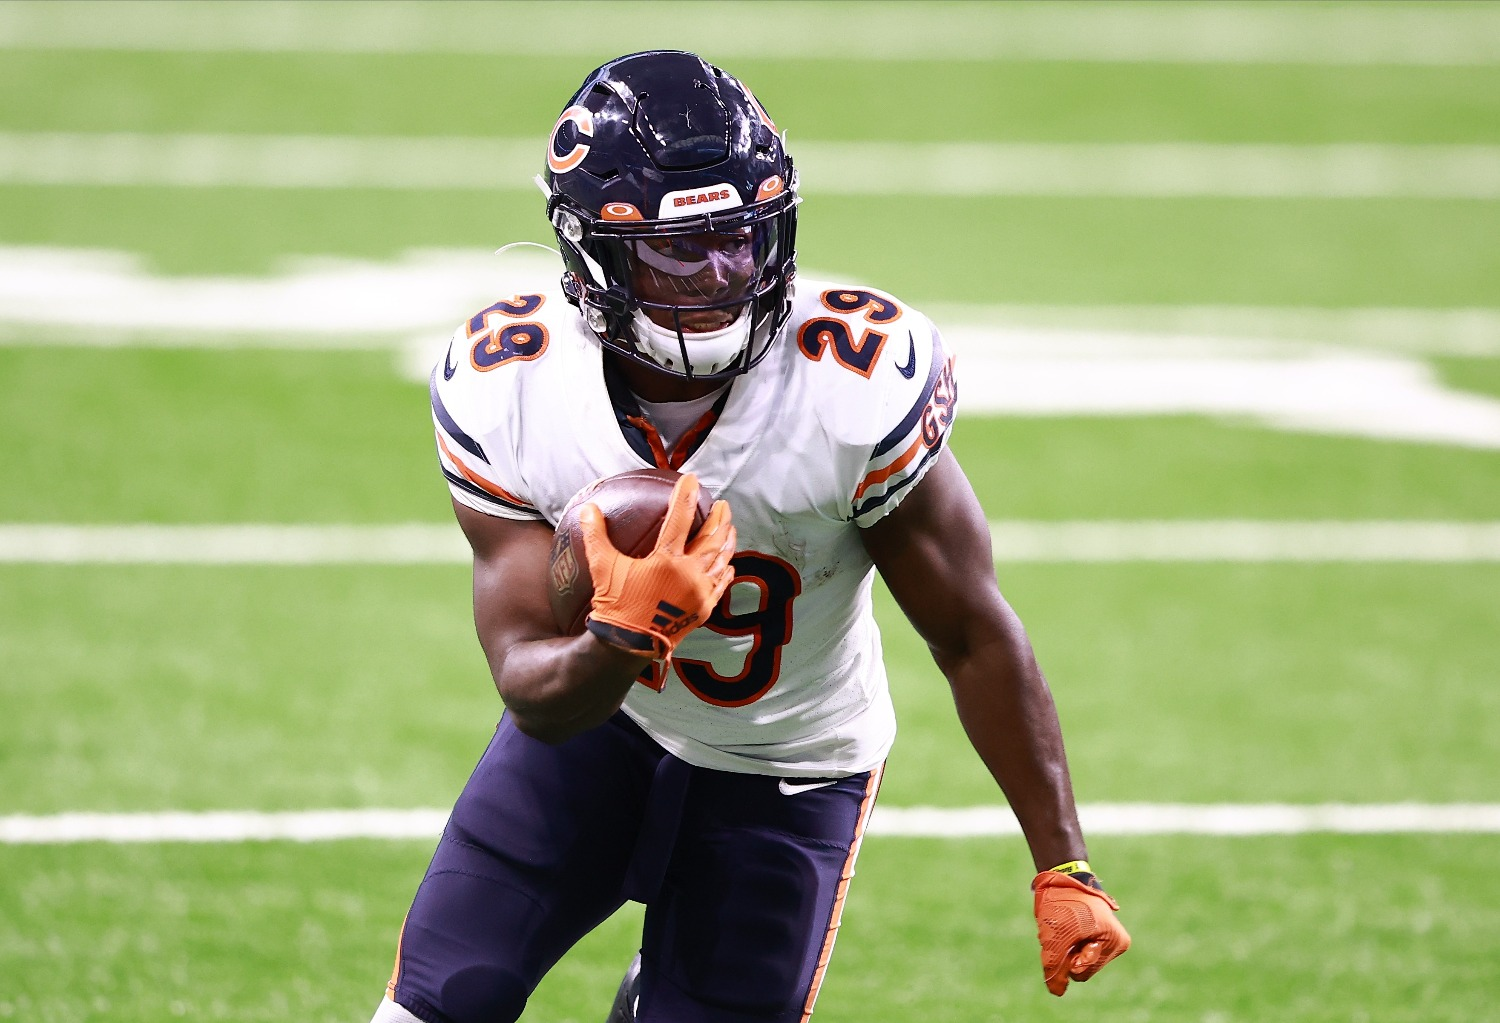 The Chicago Bears lost Tarik Cohen to a season-ending knee injury